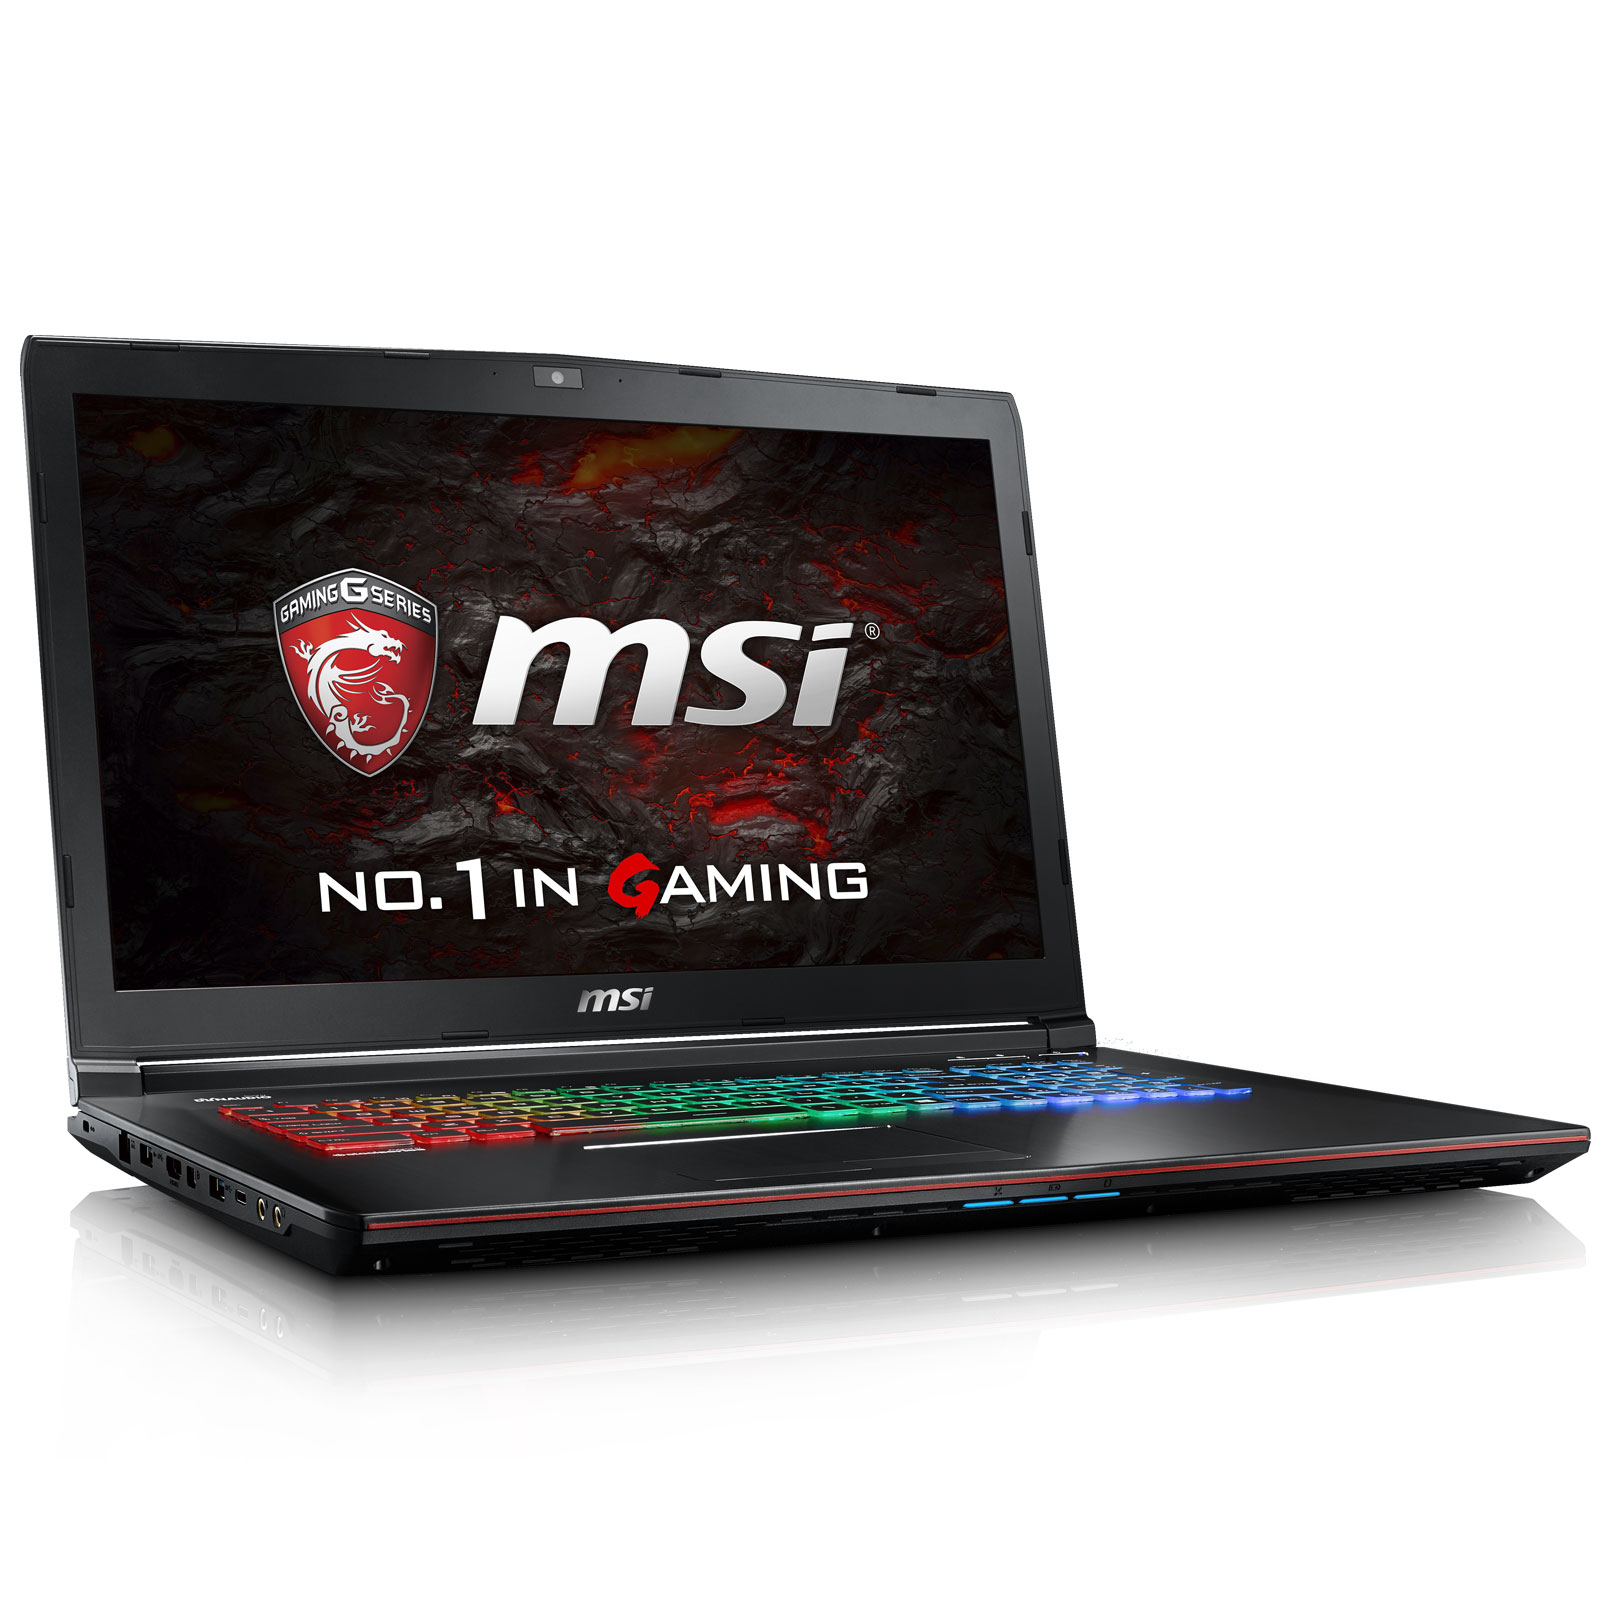 "PC portable MSI GE72VR 6RF-235XFR Apache Pro Intel Core i7-6700HQ 16 Go SSD 512 Go + HDD 1 To 17.3"" LED Full HD 120 Hz NVIDIA GeForce GTX 1060 3 Go Graveur DVD Wi-Fi AC/Bluetooth Webcam Free DOS (garantie constructeur 2 ans)"